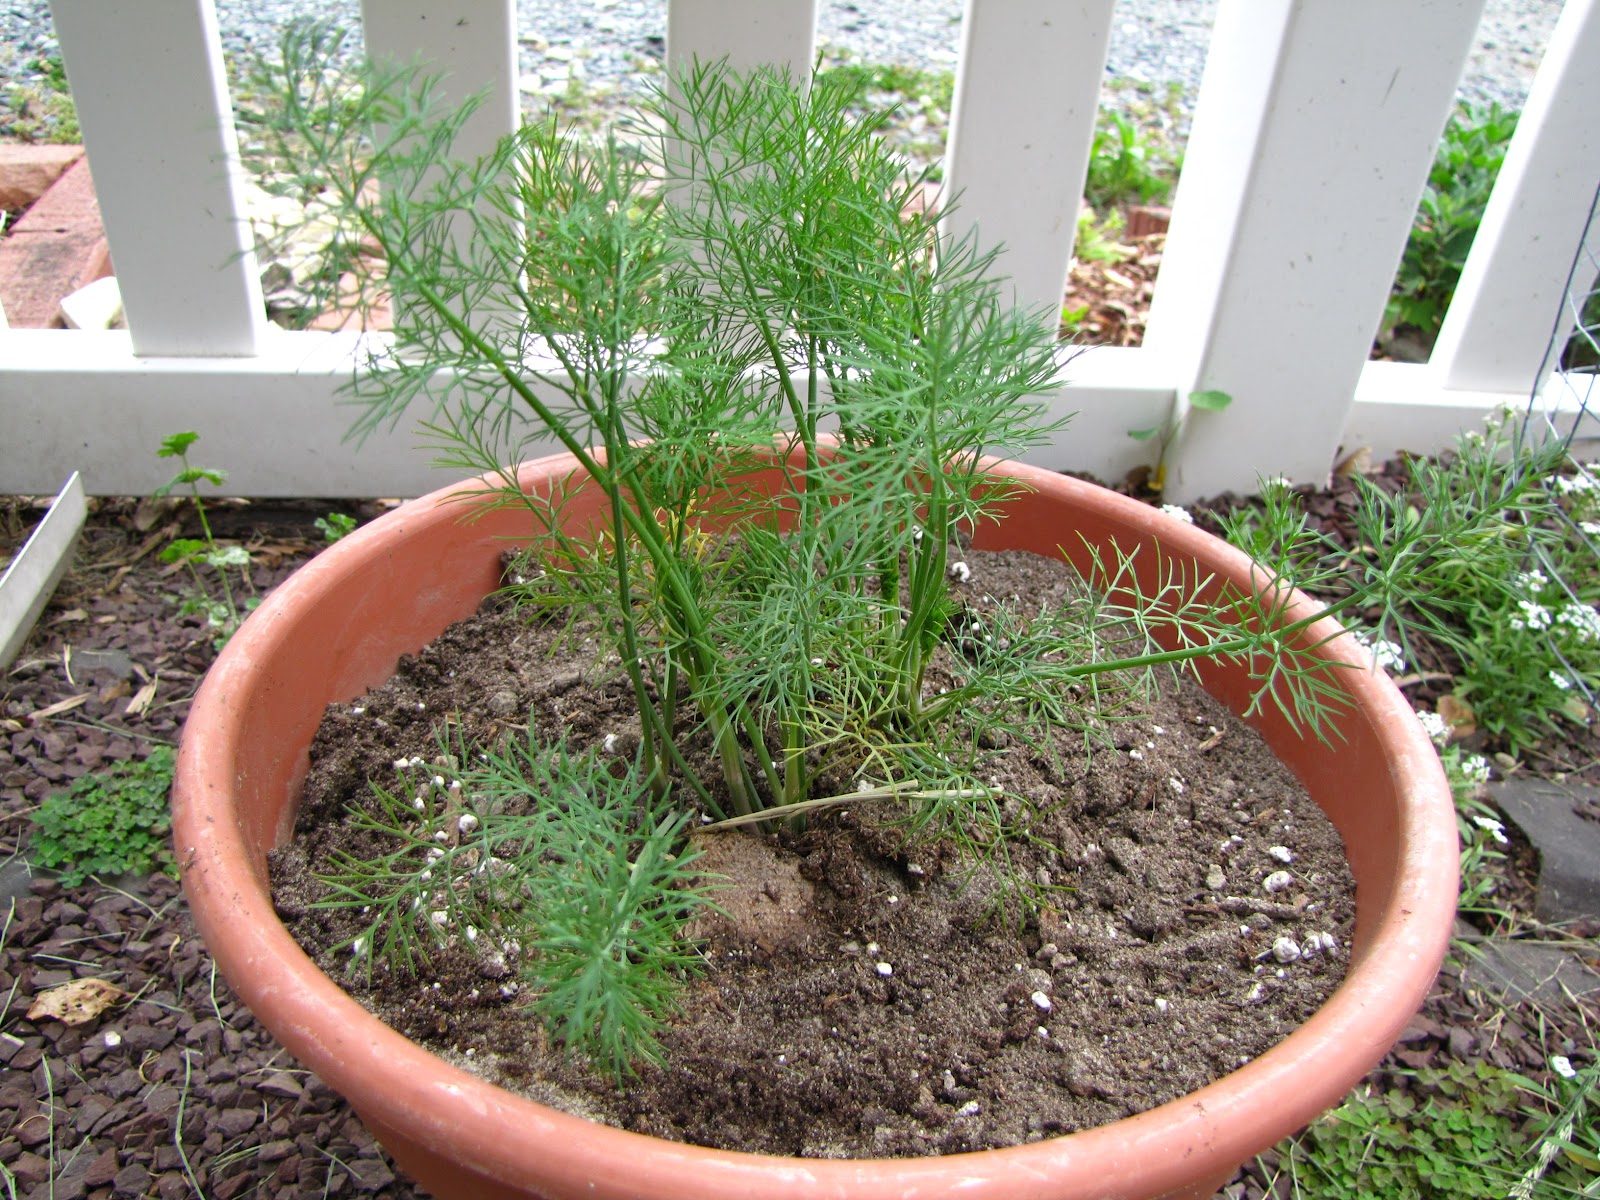 Views from the Garden Tips on growing dill weed